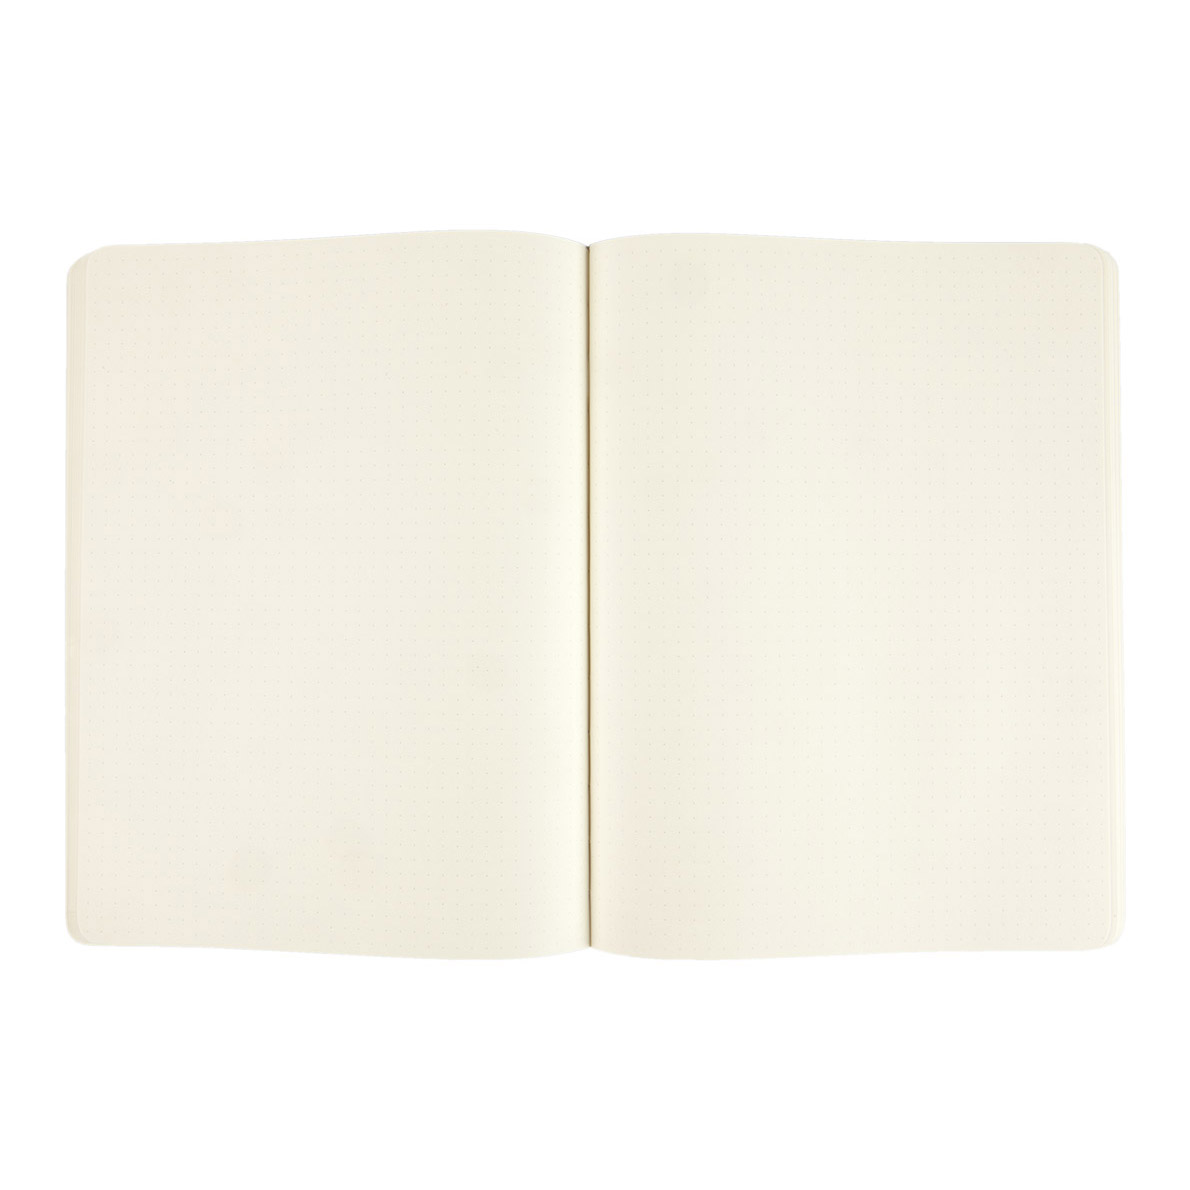 Book Cover Paper Weight : Moleskine classic large notebook soft cover dotted